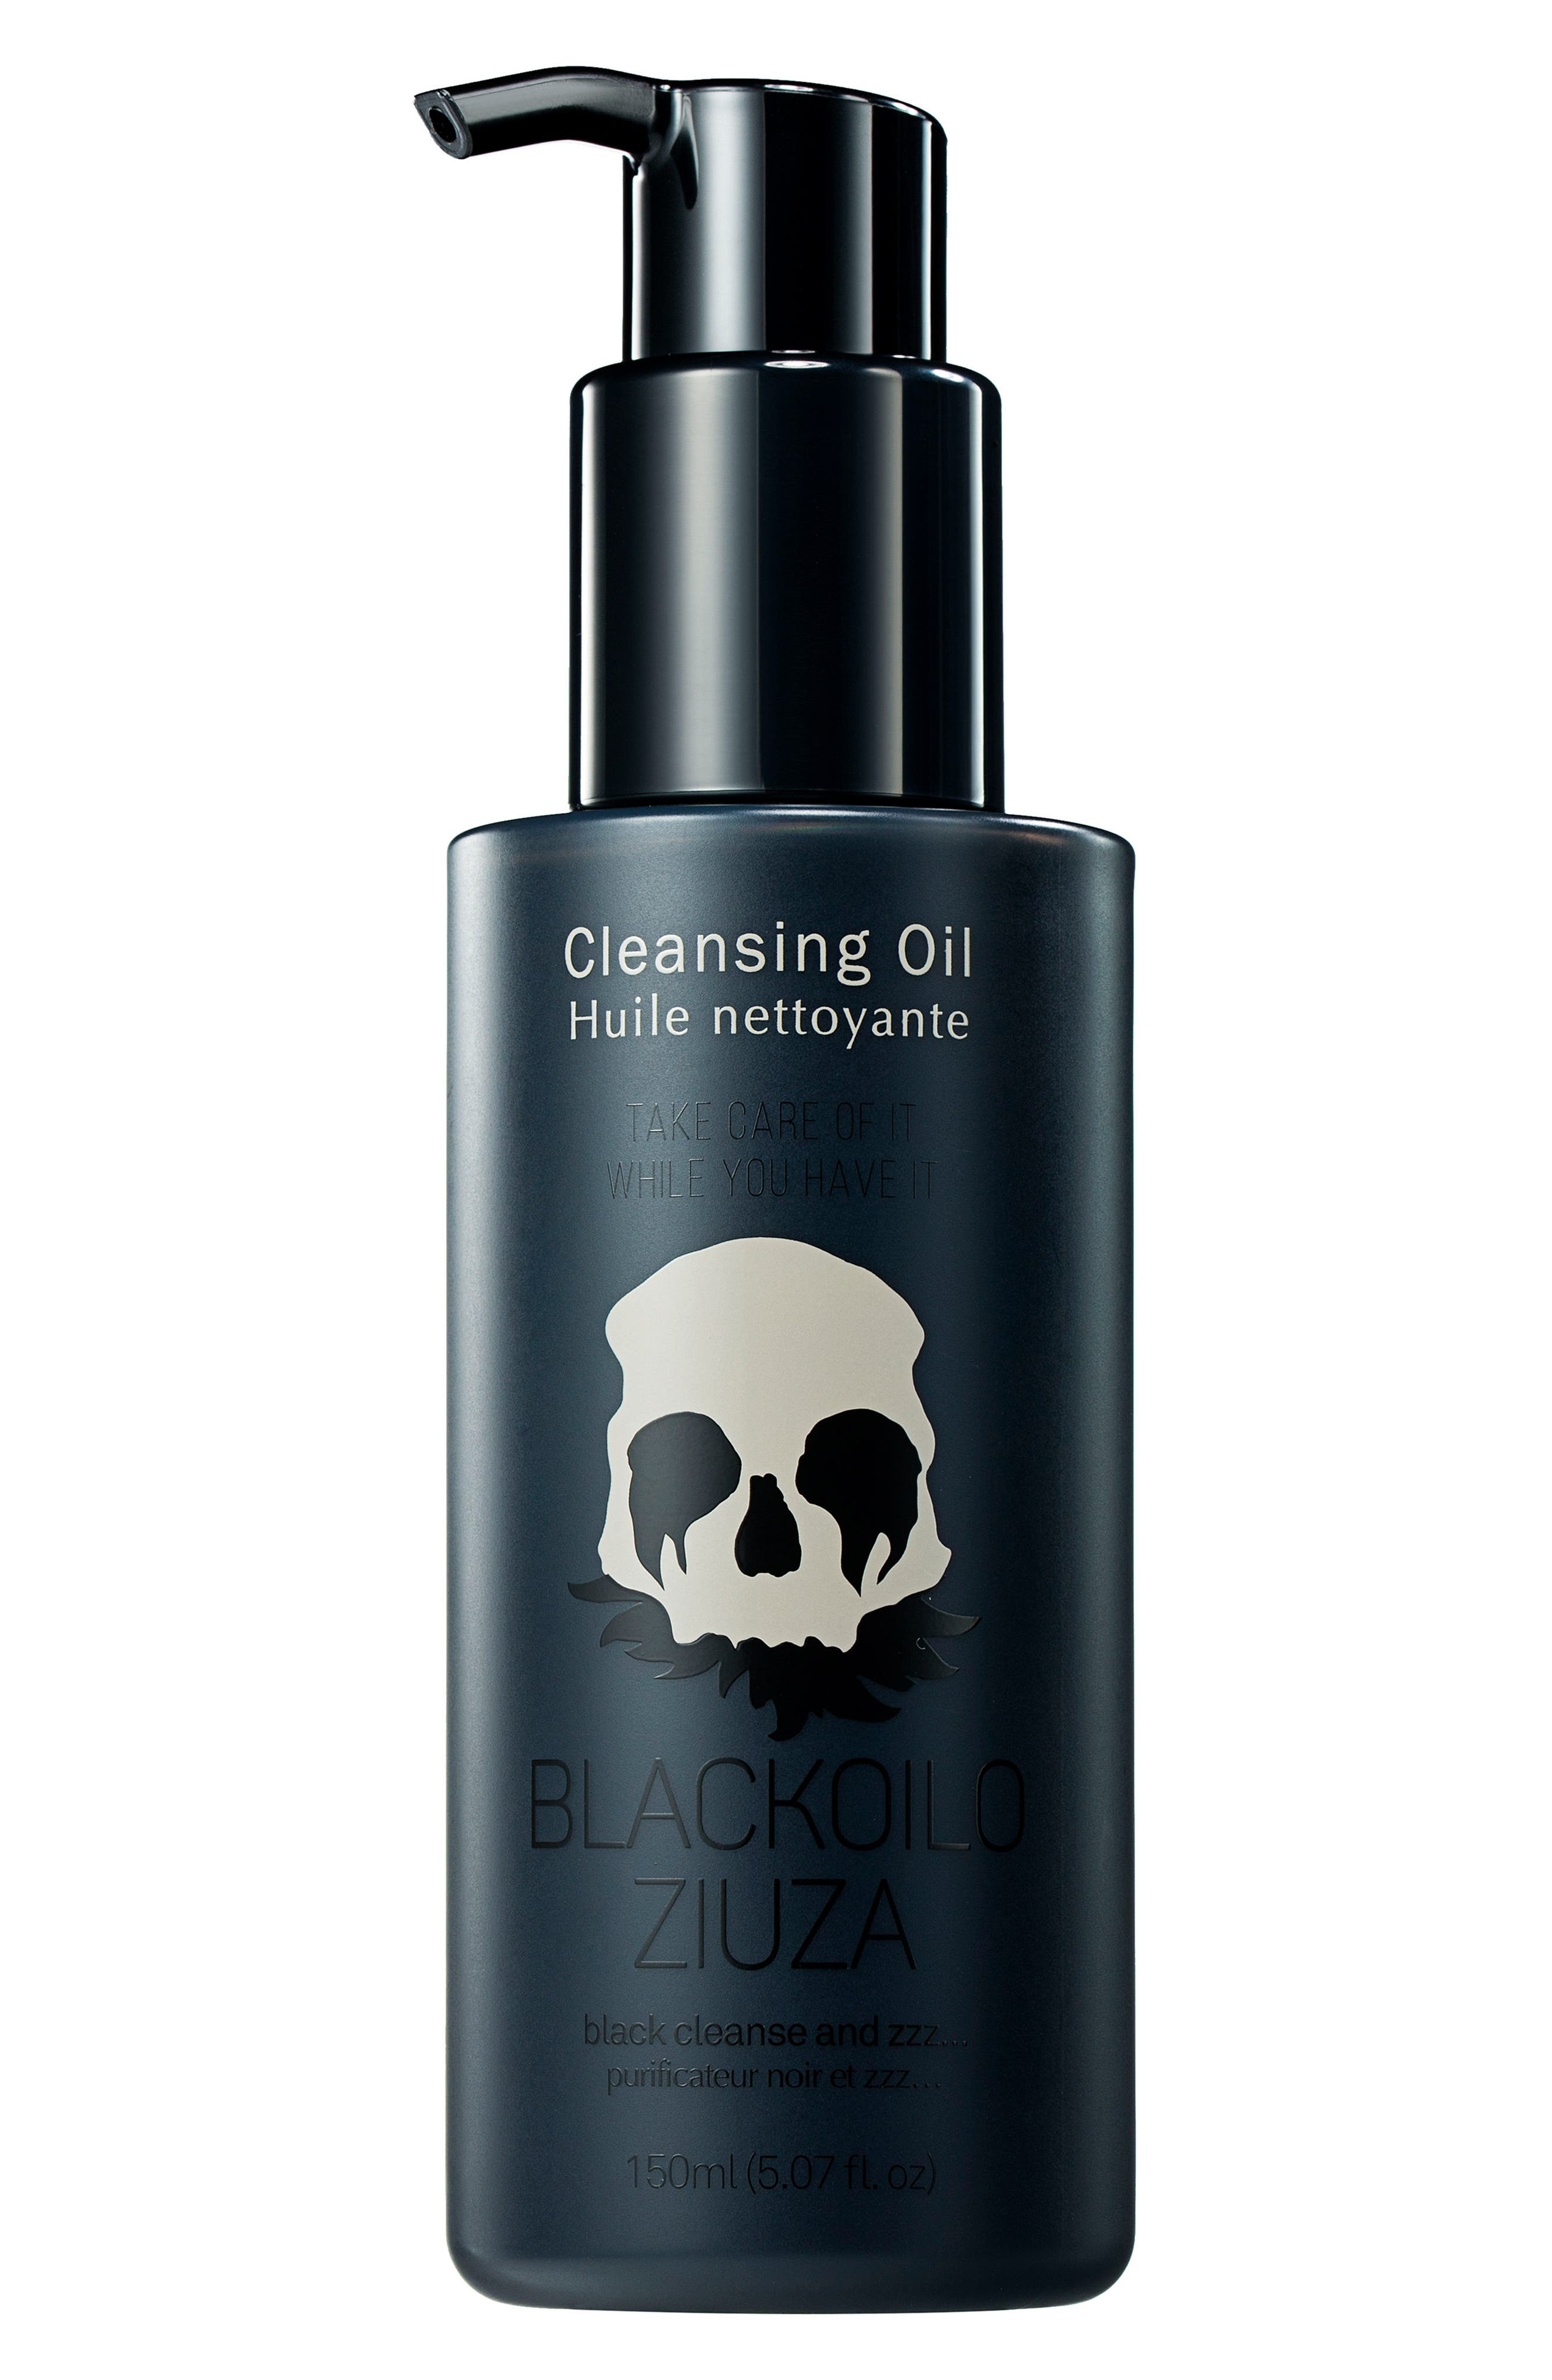 Blackoiloziuza Makeup Removing Cleansing Oil,                             Main thumbnail 1, color,                             NONE